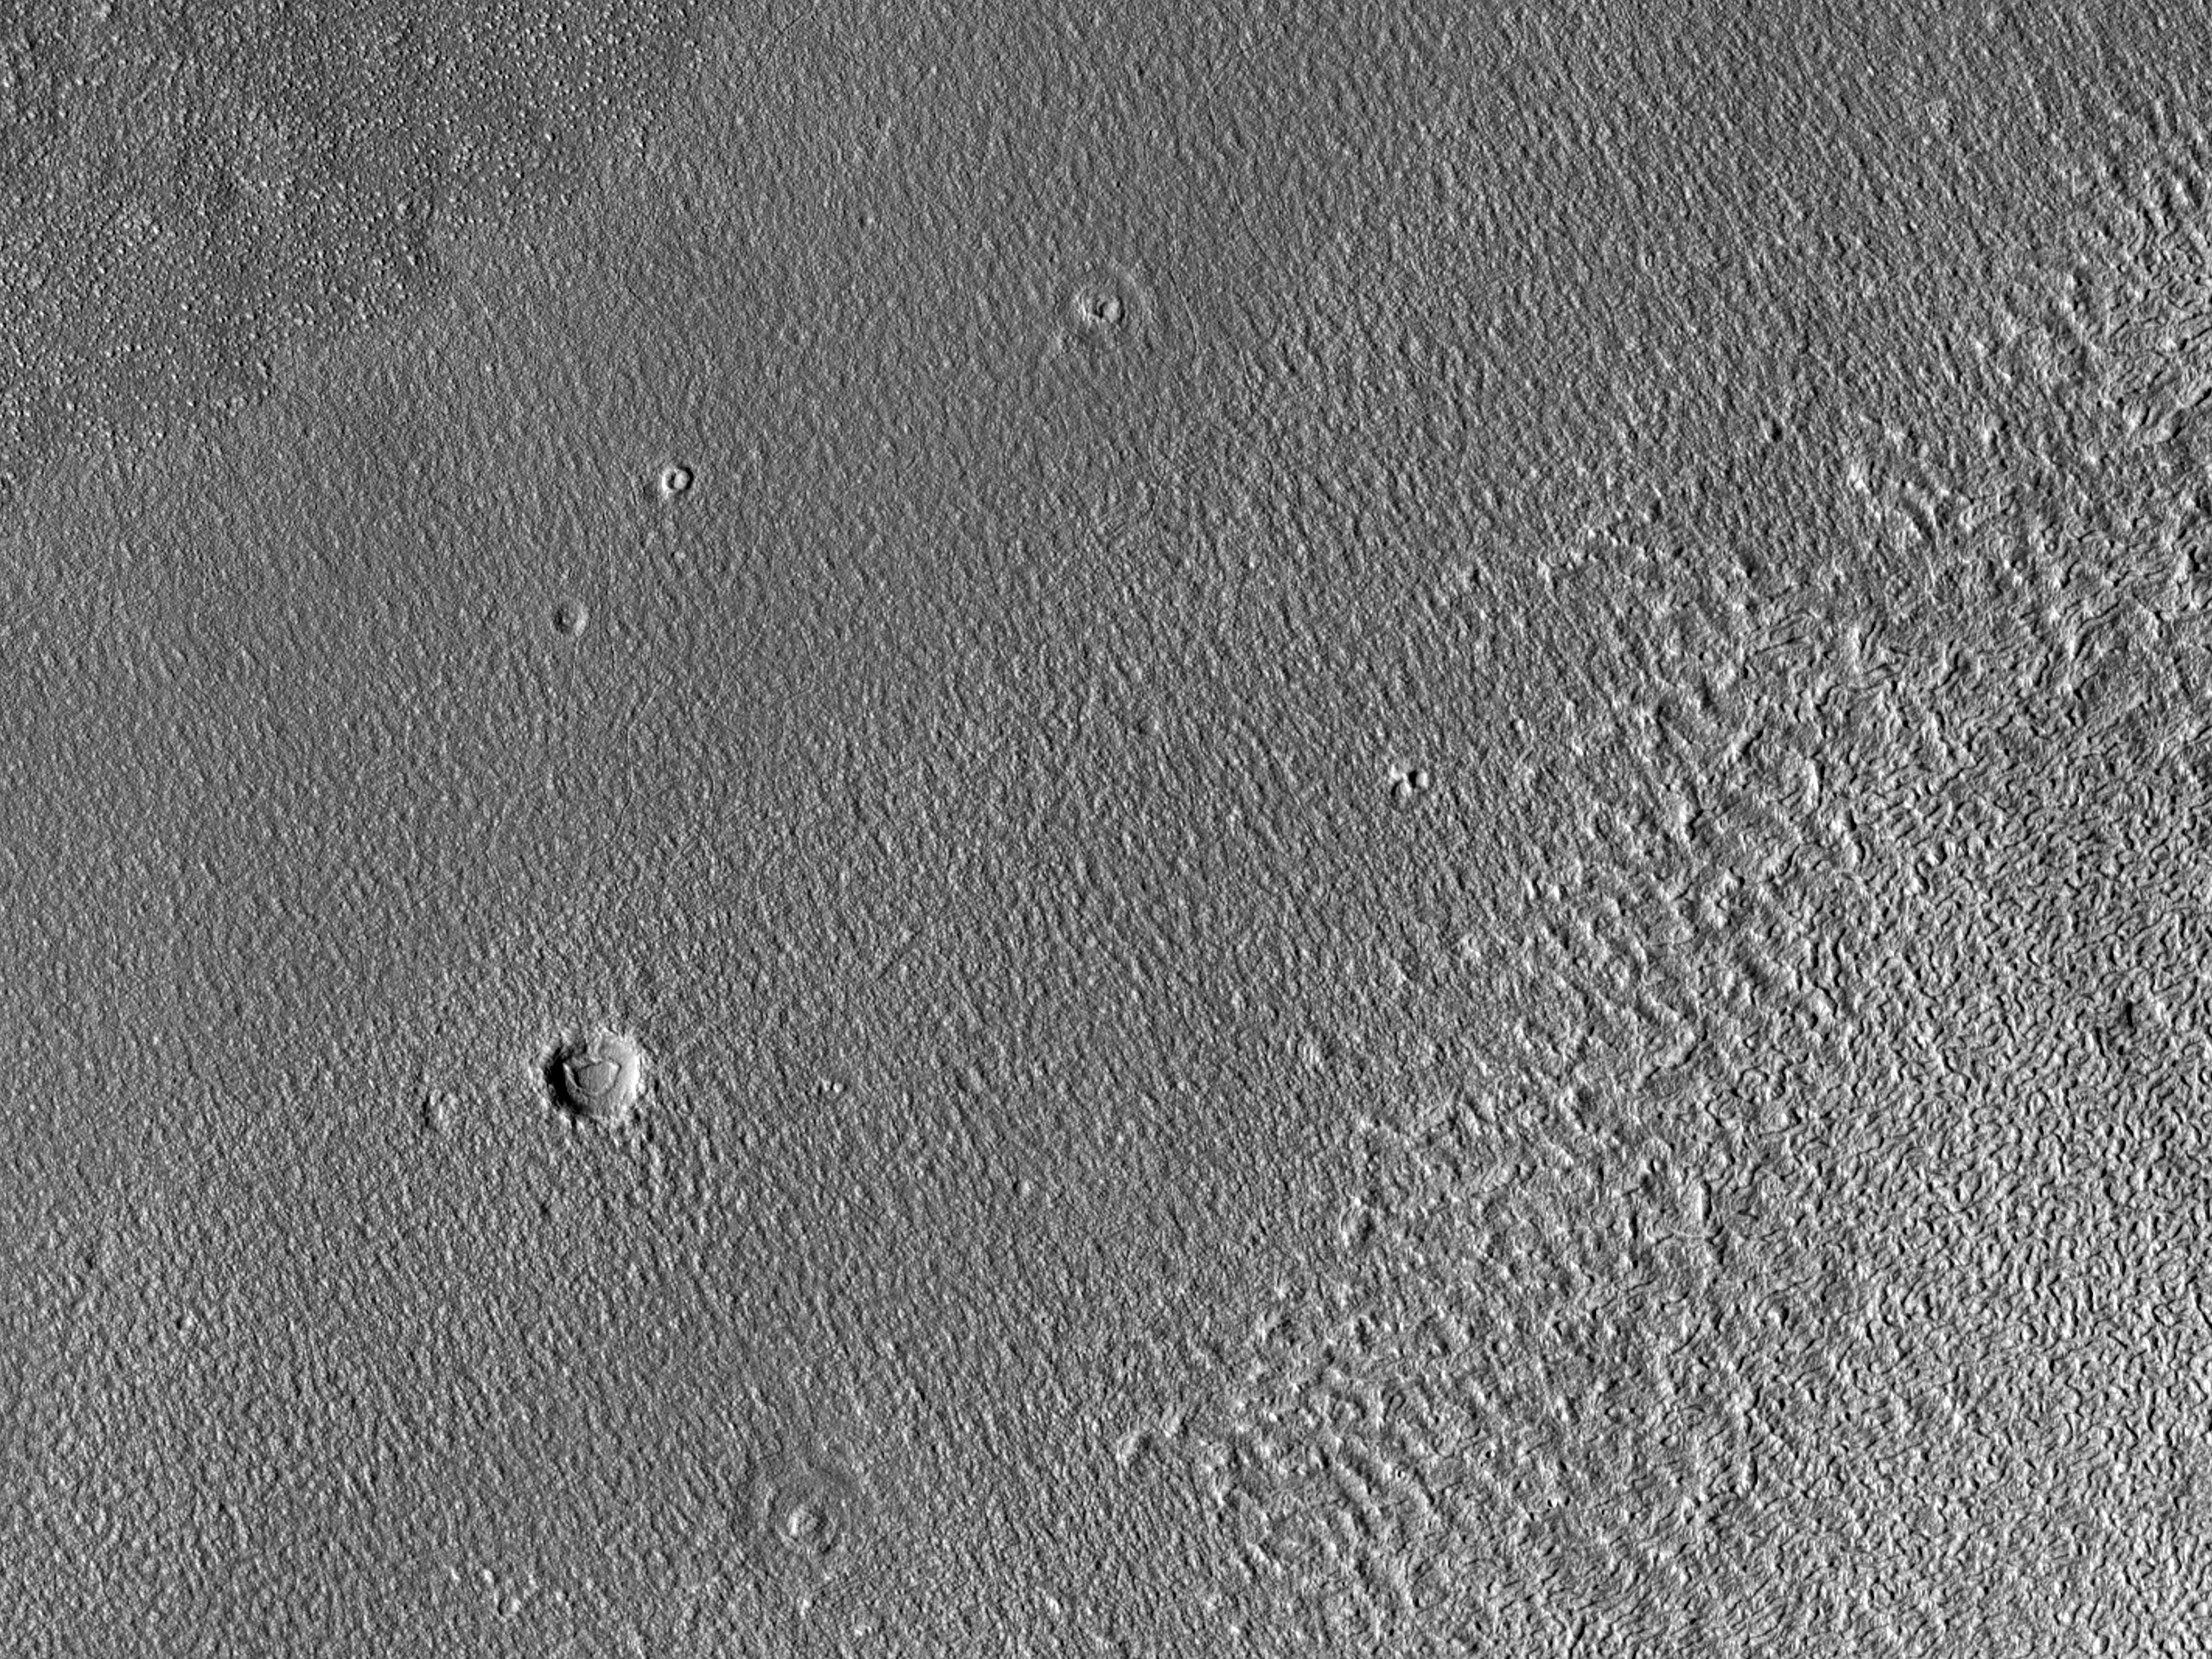 West of Erebus Montes